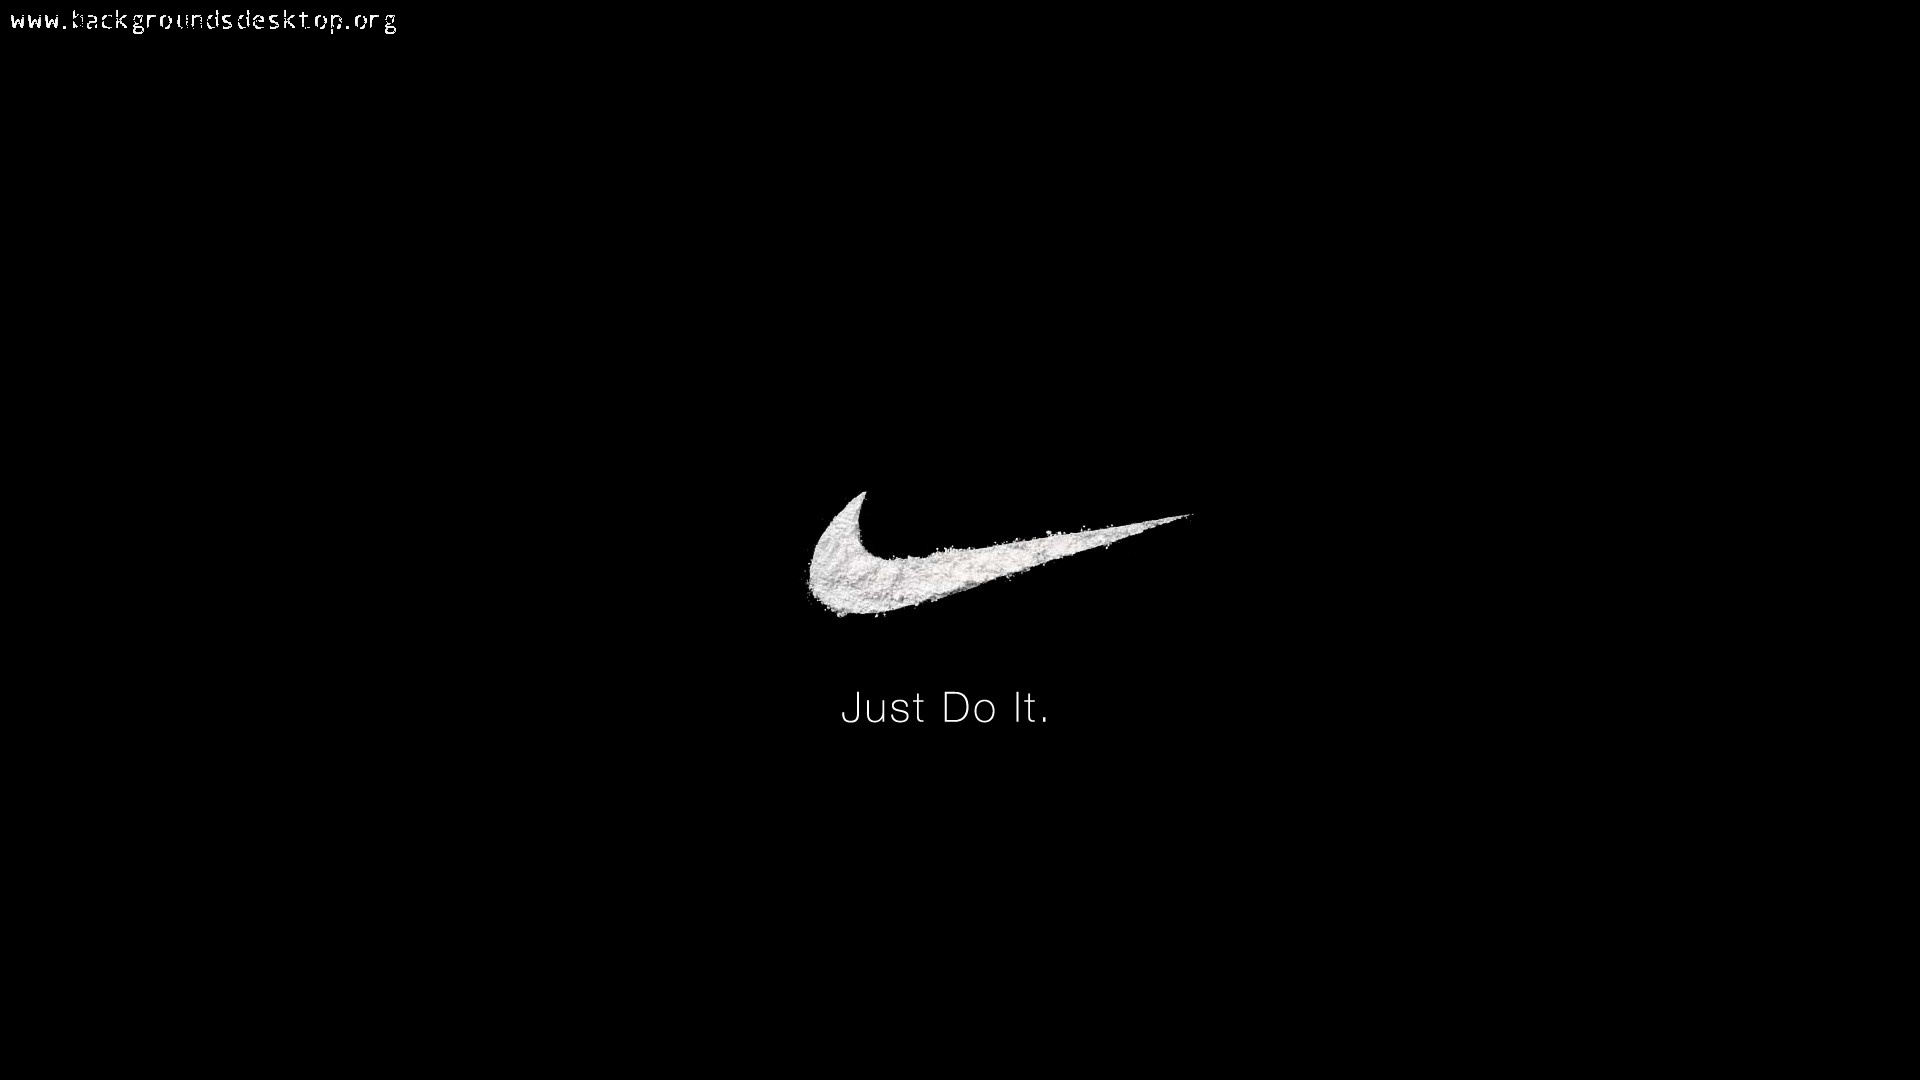 Nike-Just-Do-It-Soccer-Phone-with-High-Resolution-1920x1080-px-KB-wallpaper-wpc9008125